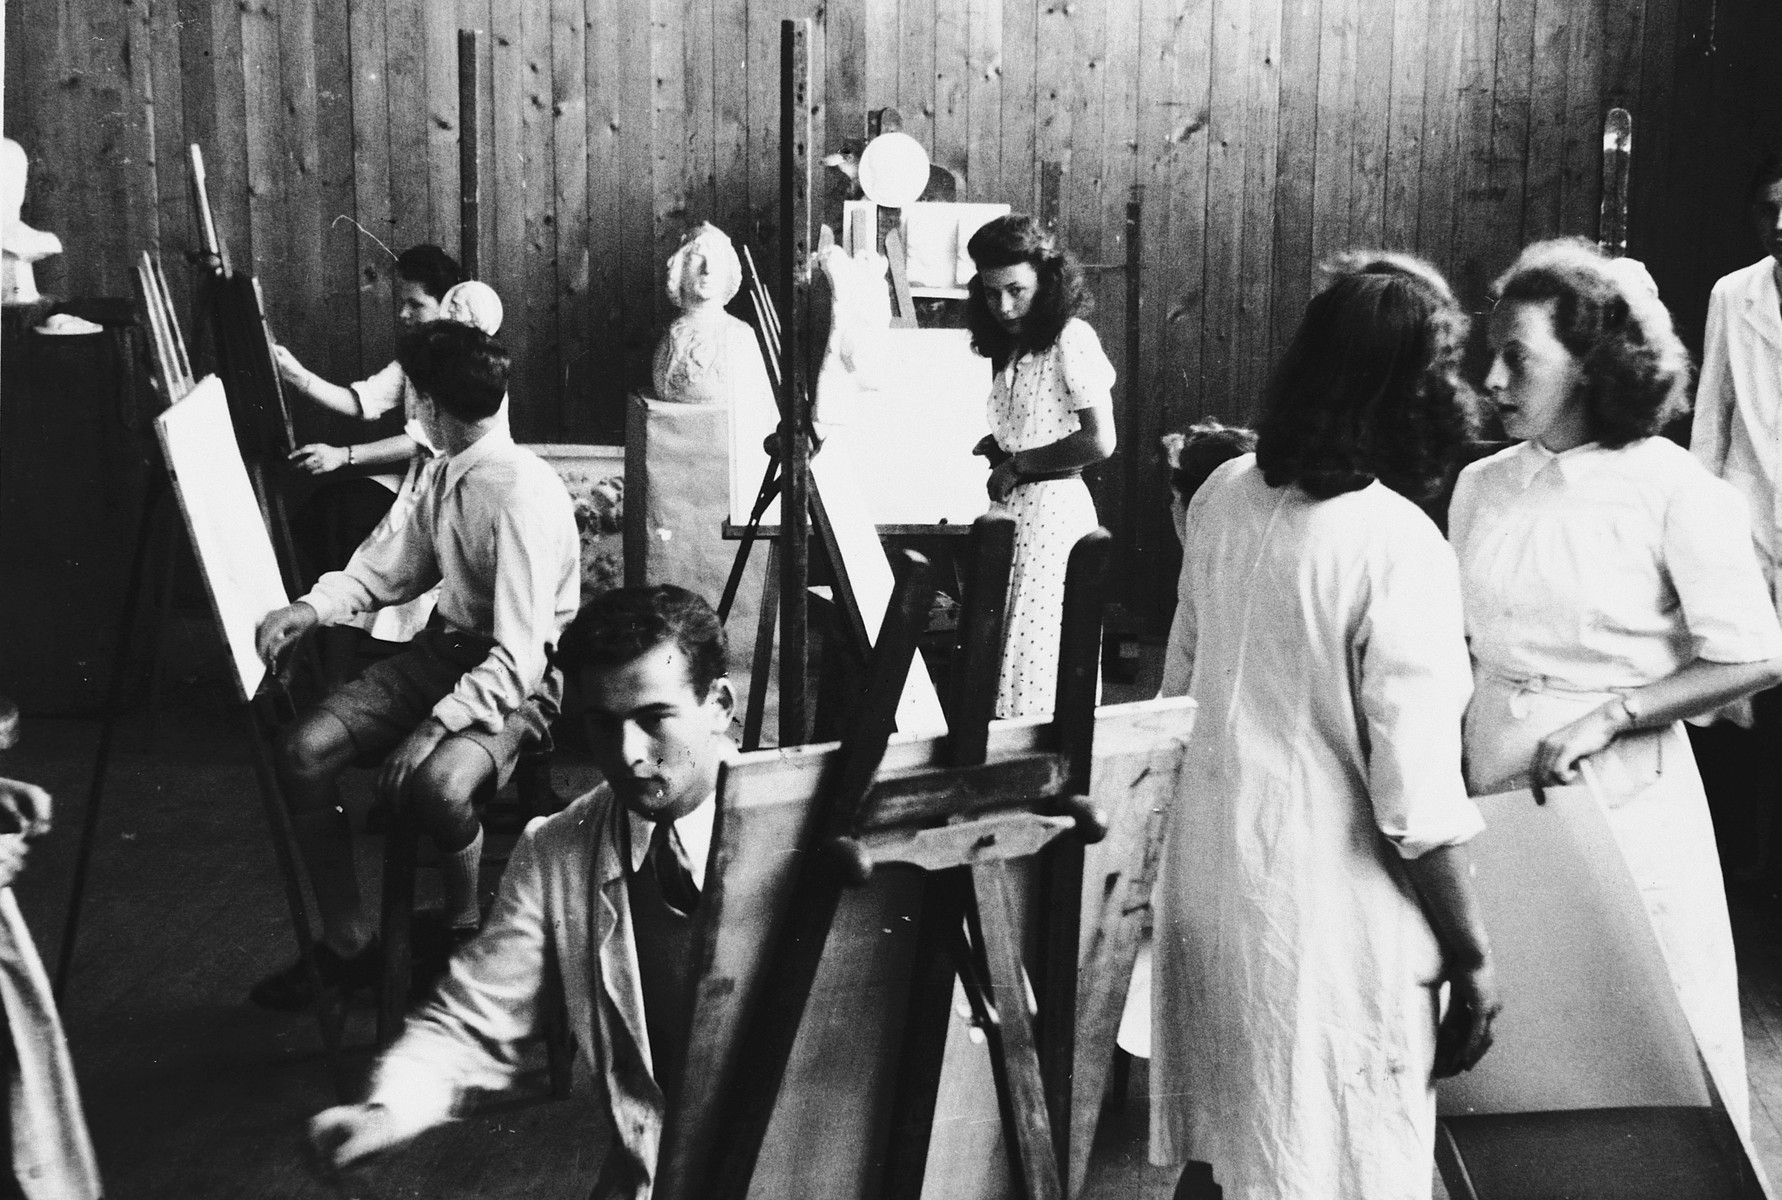 Students work in the studio of the Ecole des Beaux-Arts in Geneva, Switzerland.  Lucie Eisenstab is standing in the back, and Paul Peter Porges is seated in the front, left.